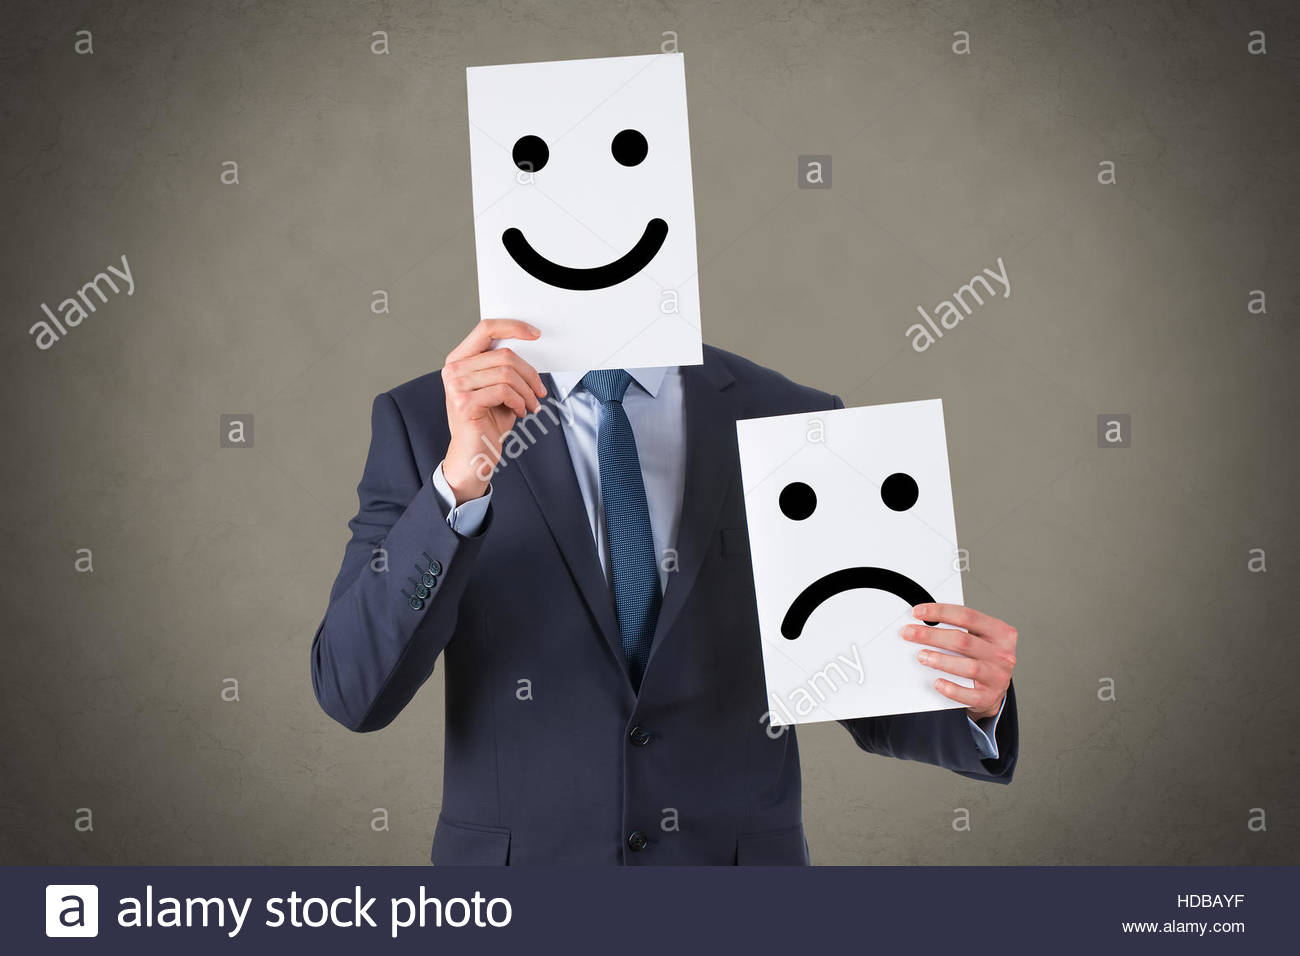 Unhappy and Happy Smileys - Stock Image